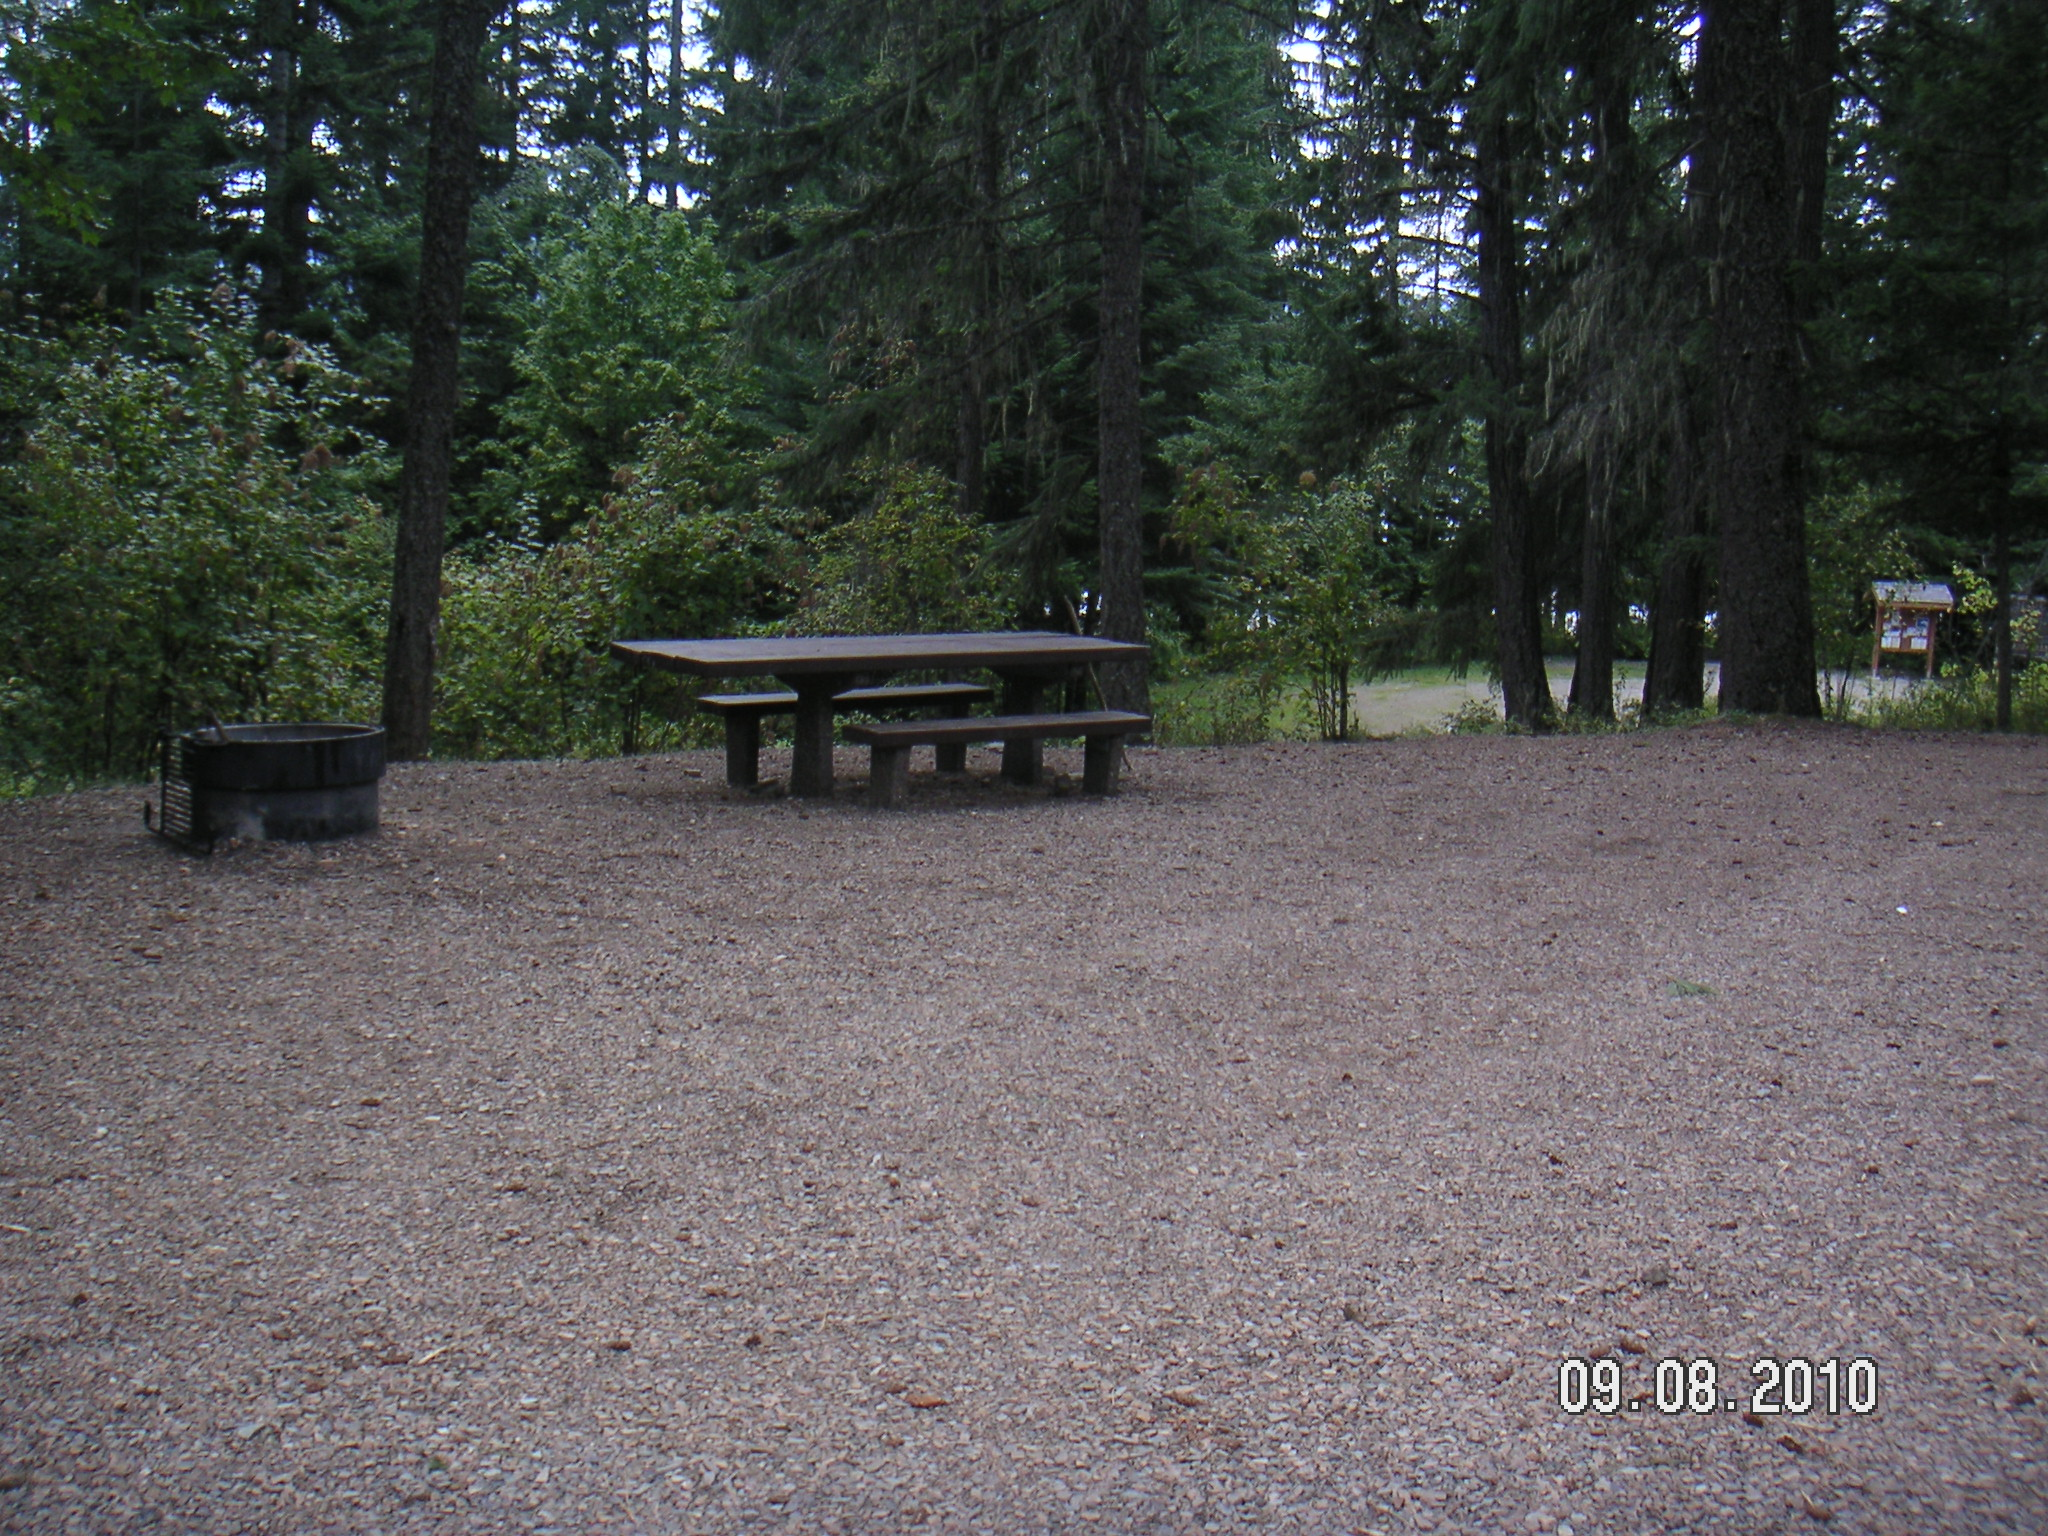 Photo of a campsite at Big Eddy